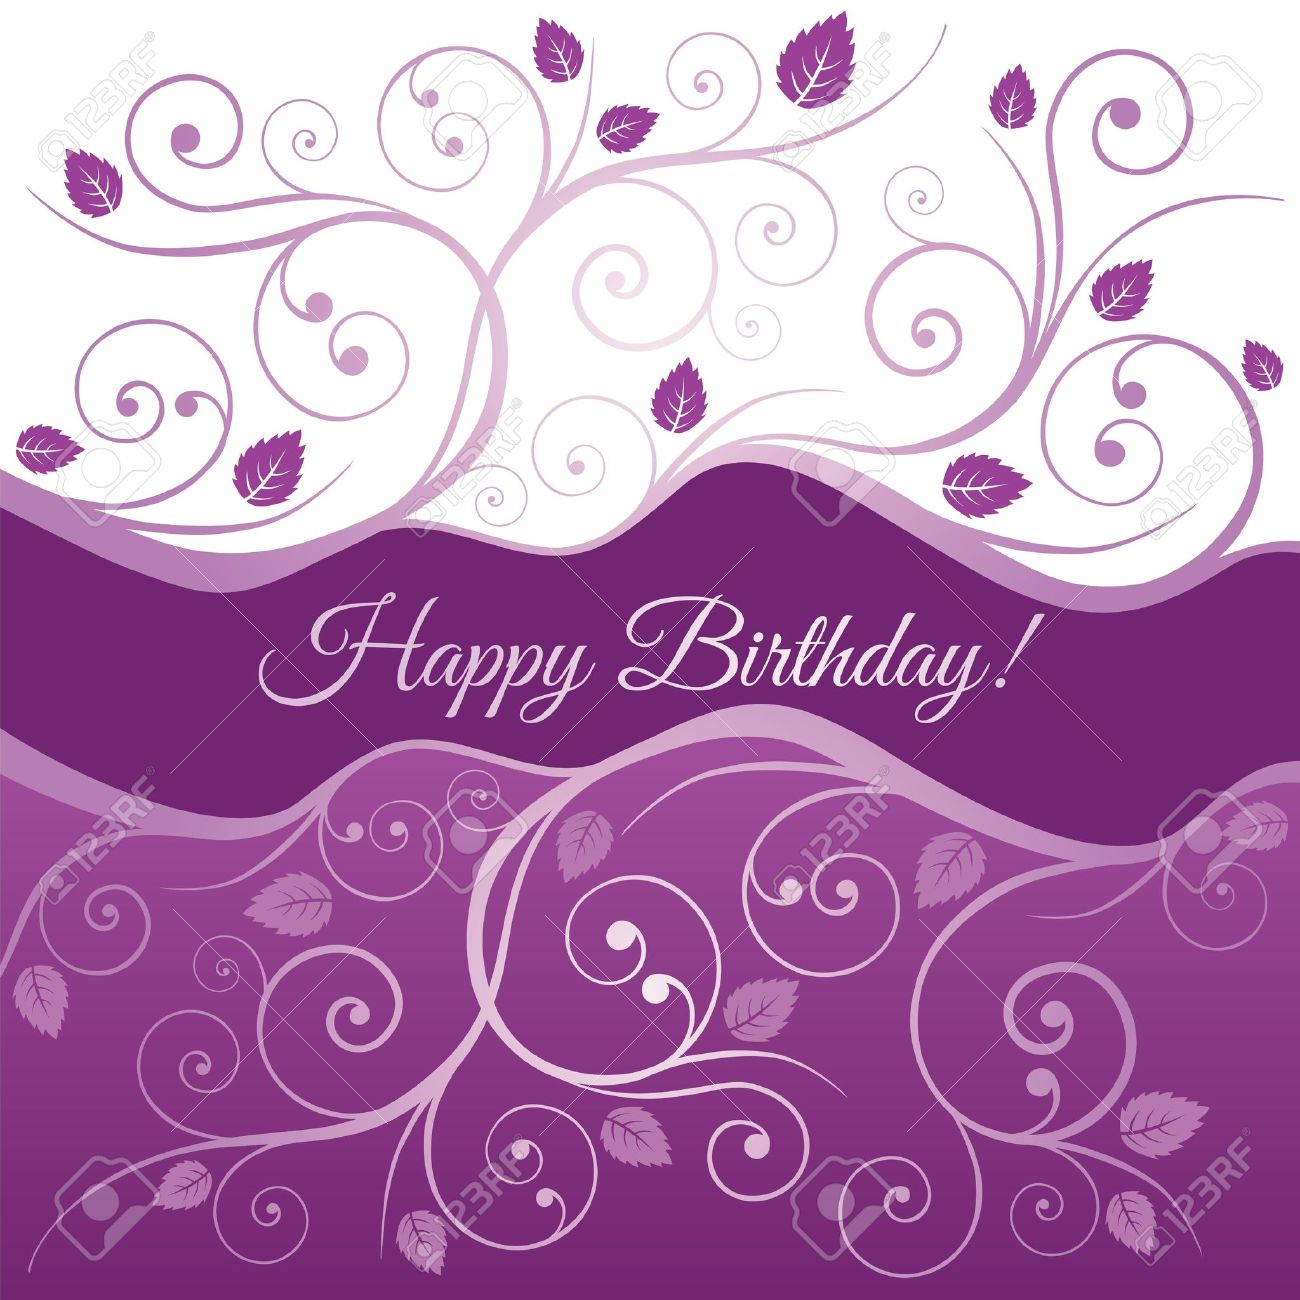 Happy Birthday card with pink and purple swirls and leaves Stock Vector - 20277149